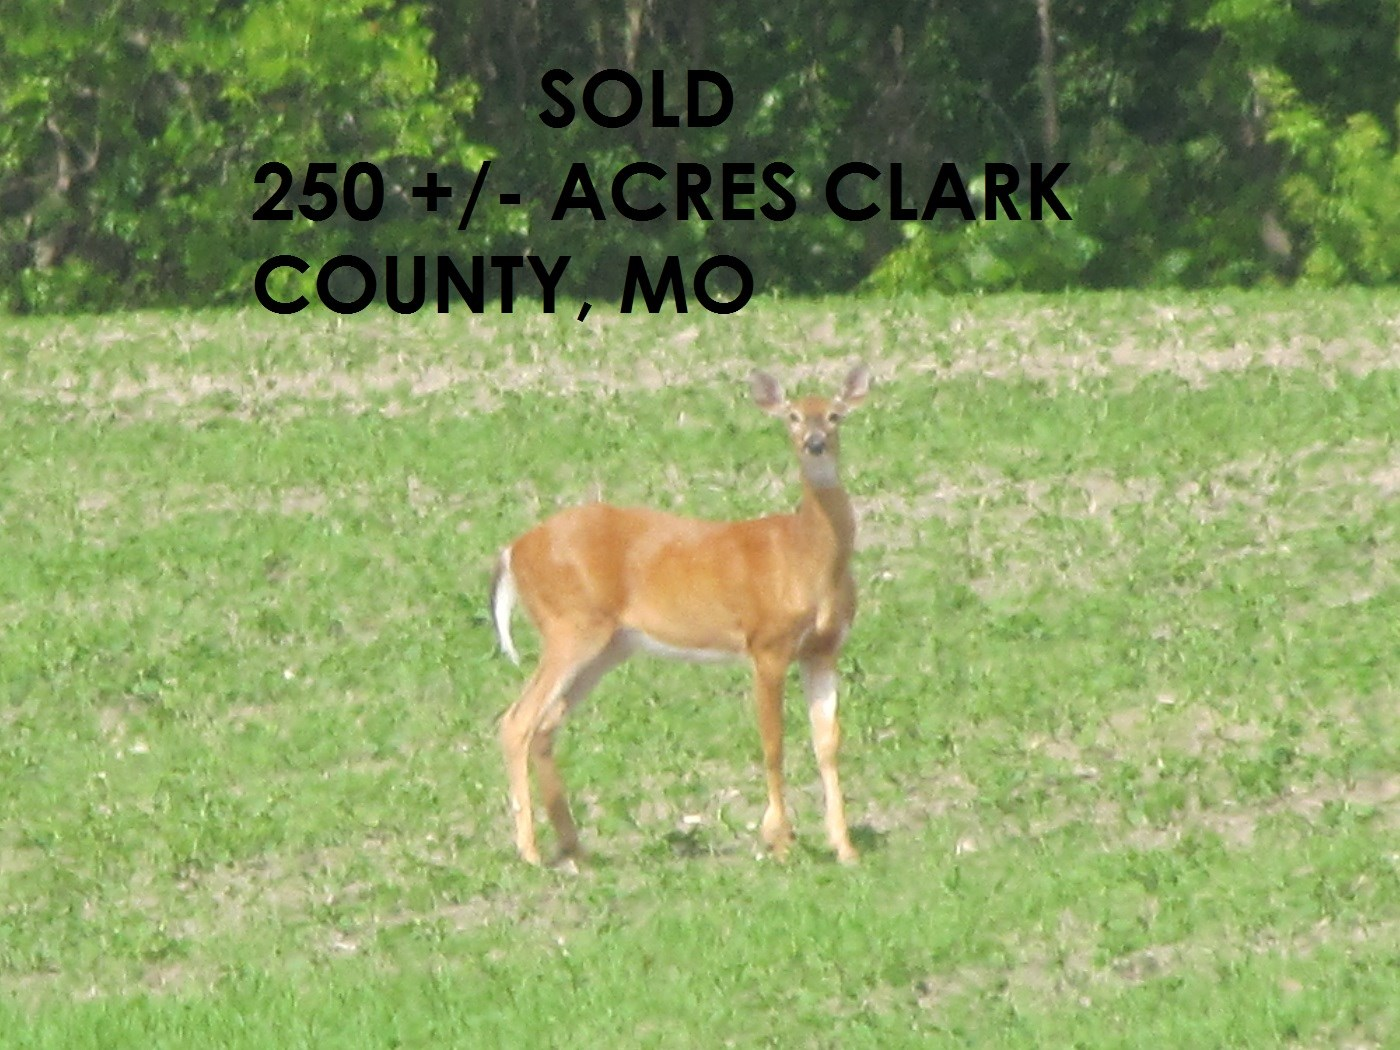 NORTHERN MO TROPHY HUNTING CLARK COUNTY, LAND FOR SALE NEMO